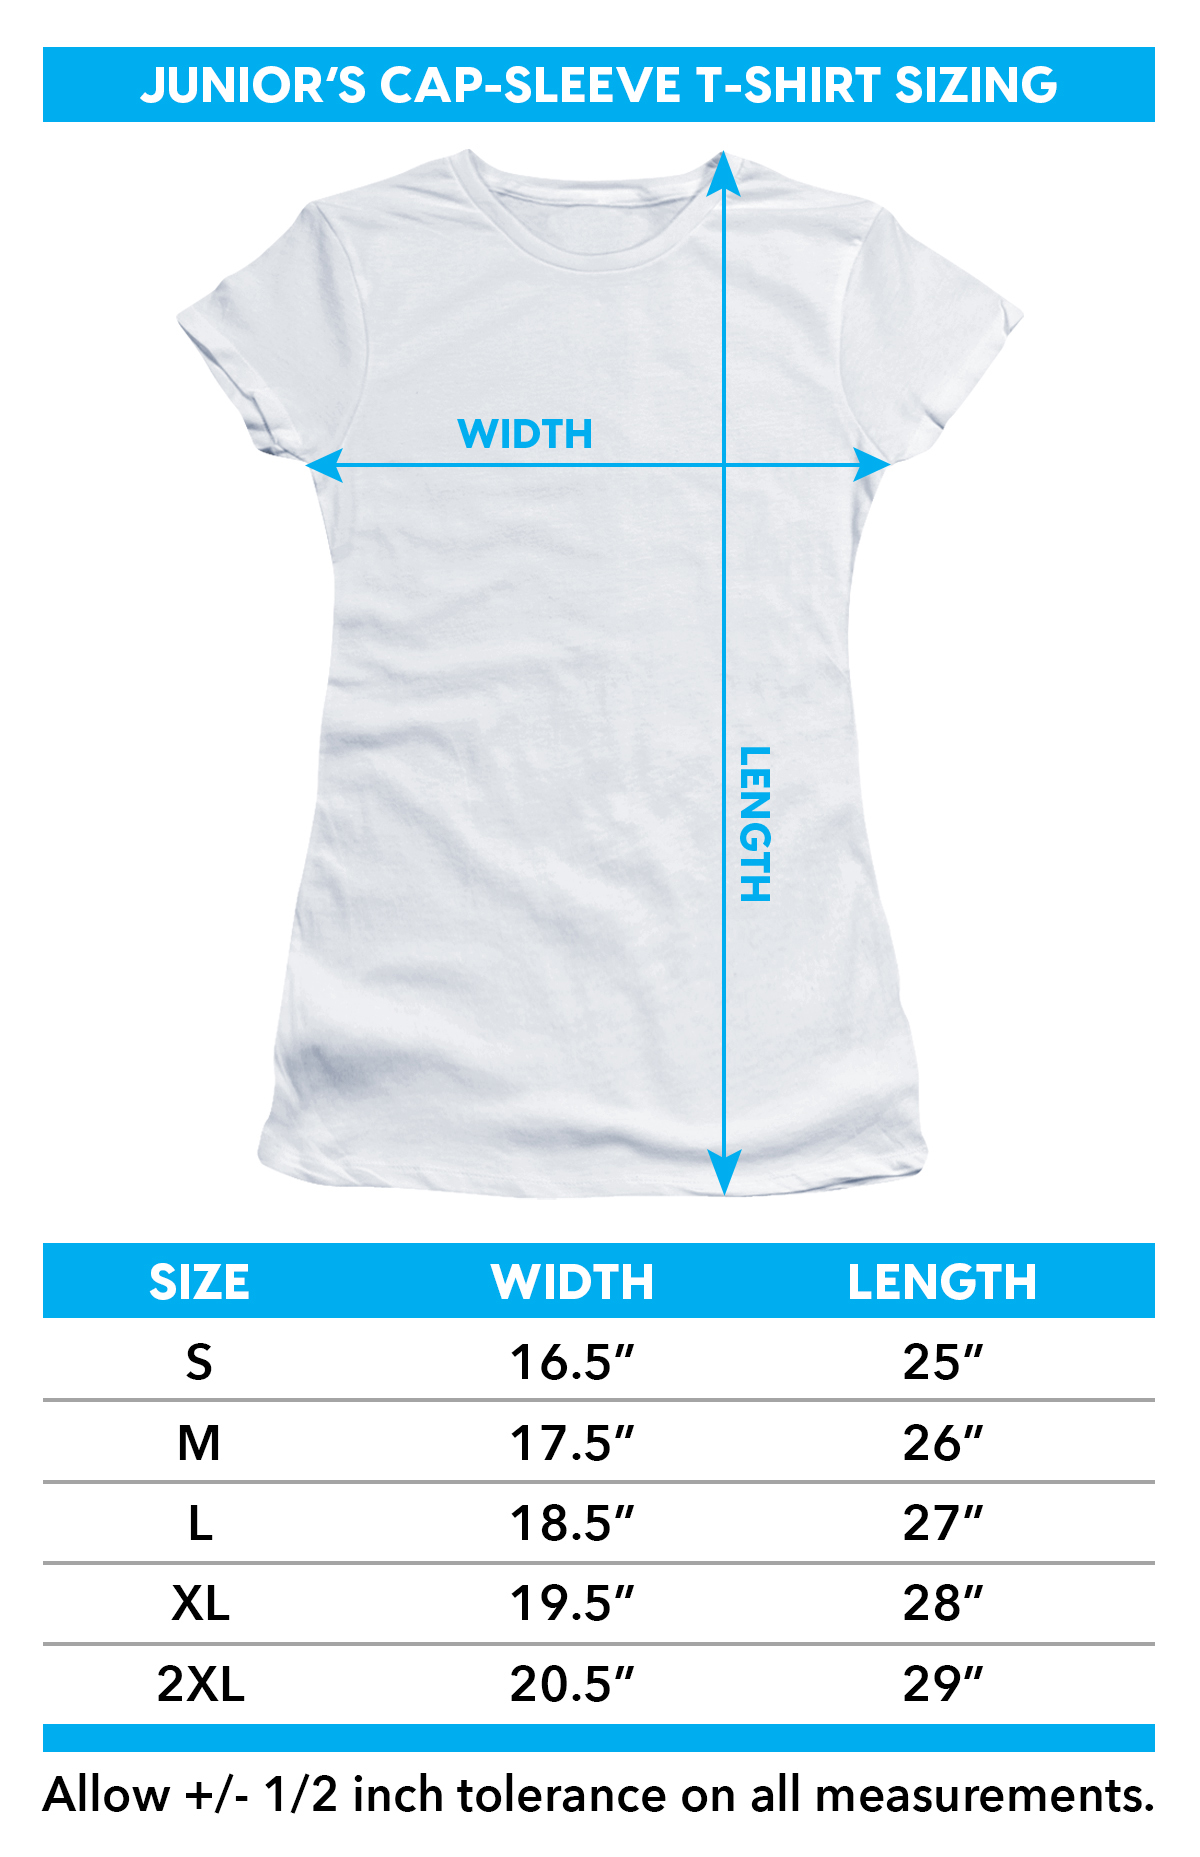 Girls sizing chart for Labyrinth Girls T-Shirt - Globes TRV-LAB143-JS